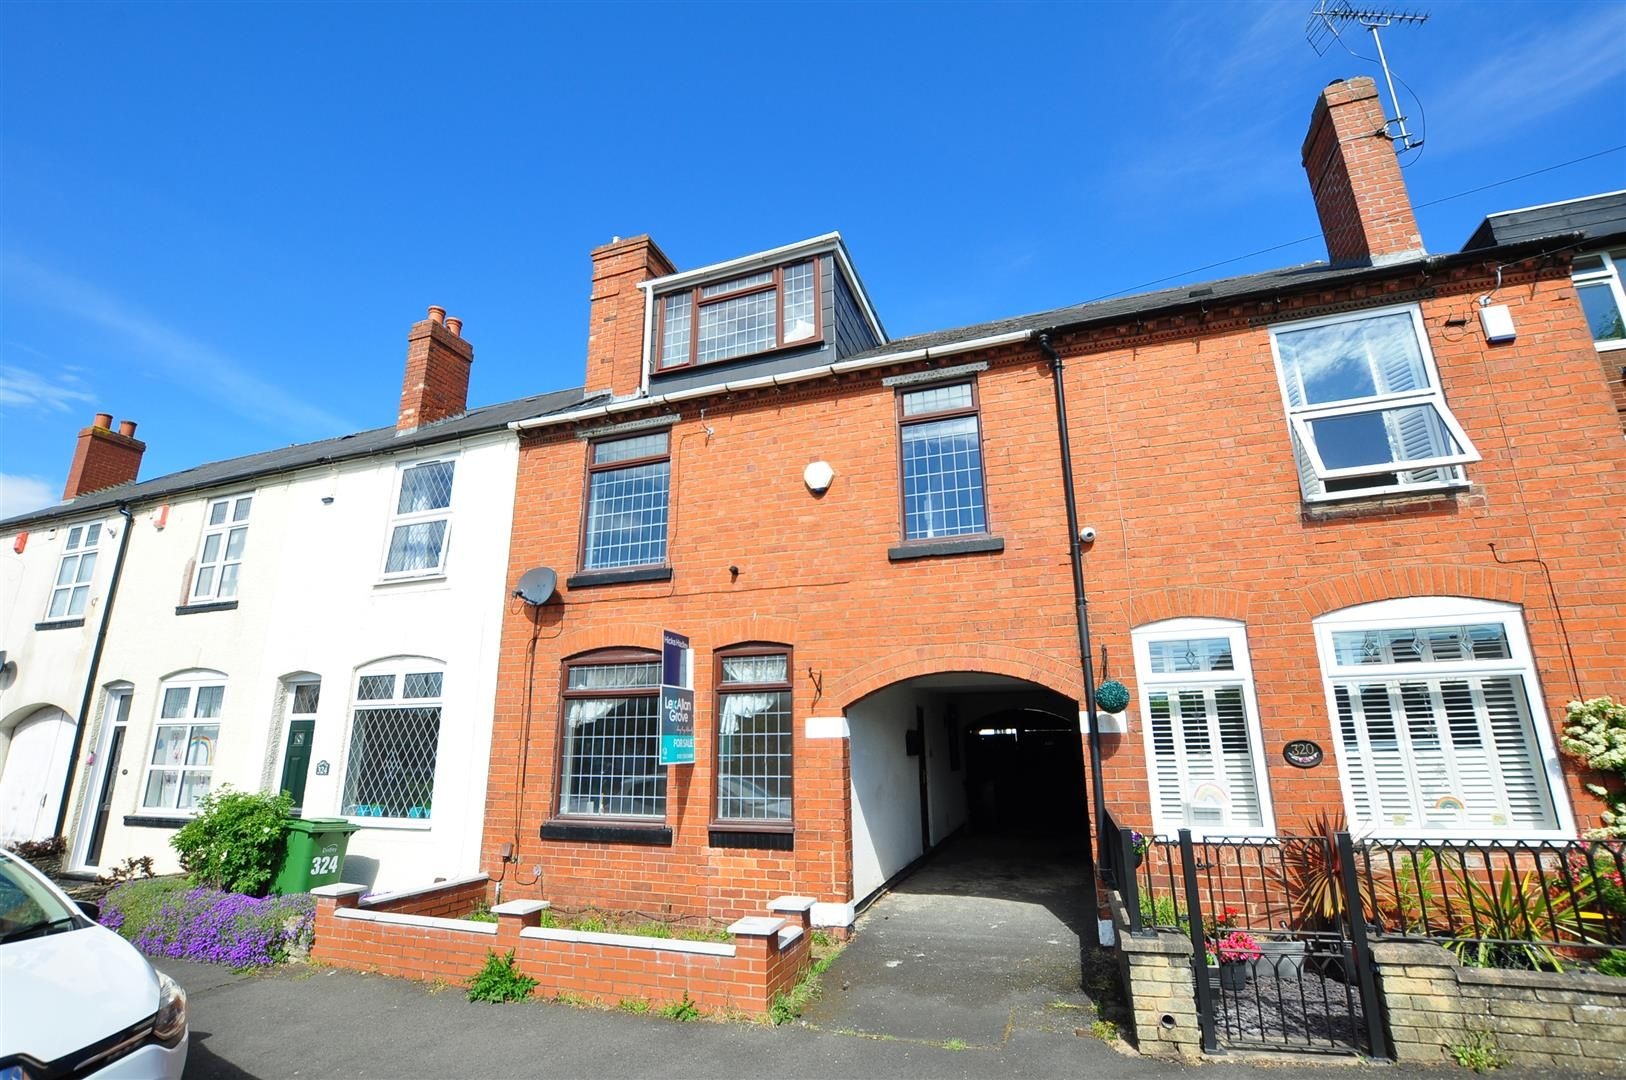 3 bed terraced for sale, B63